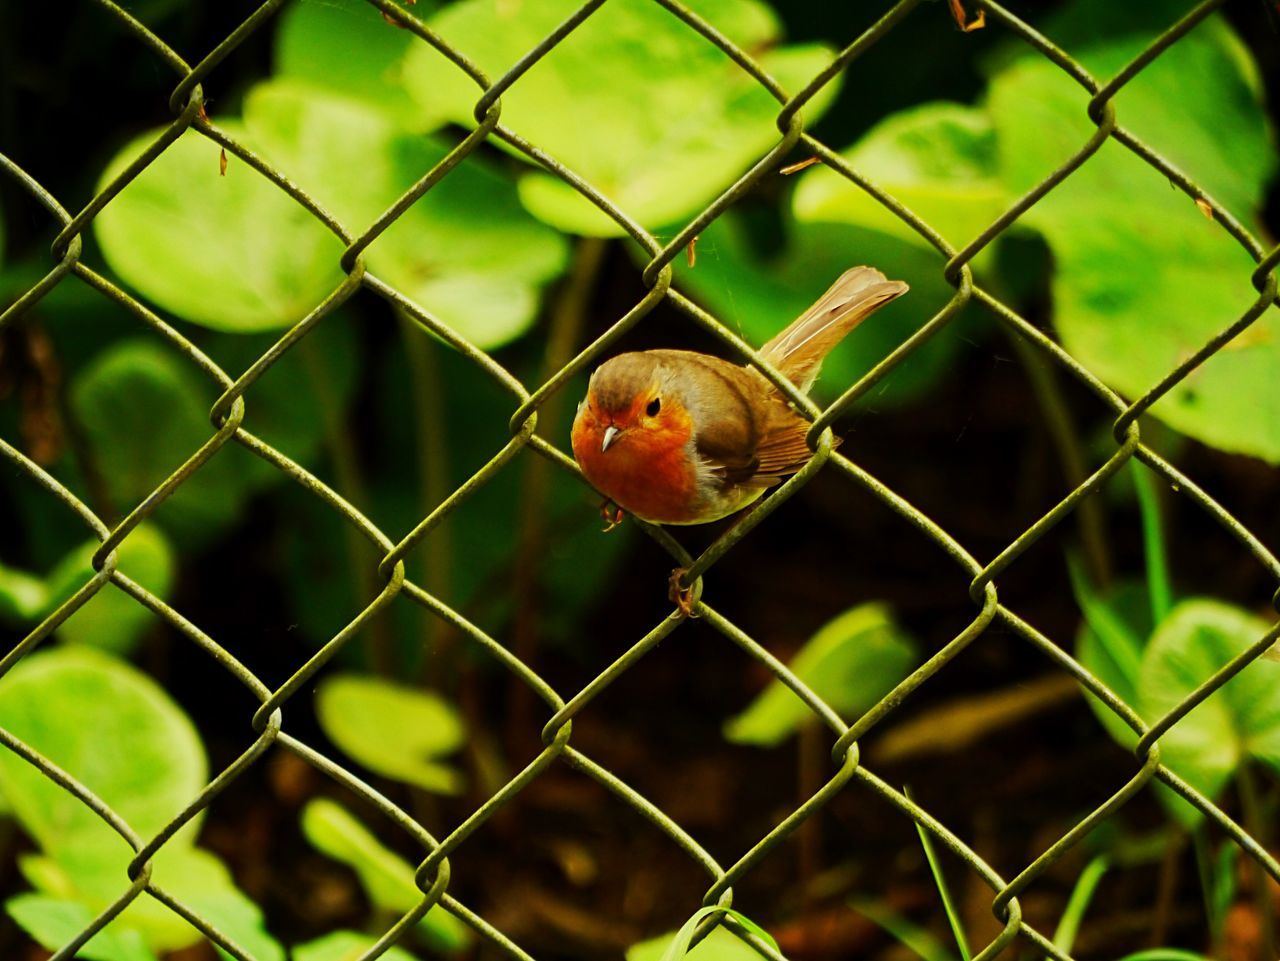 A robin sitting in the fence. Chainlink Fence One Animal Metal Animal Themes Safety Protection Focus On Foreground Animals In The Wild Bird Day Animal Wildlife Cage No People Outdoors Close-up Nature Eyeemphotography EyeEmBestPics Animals In The Wild EyeEmNewHere EyeEm Best Shots First Eyeem Photo Beauty In Nature EyeEm Gallery Beauty